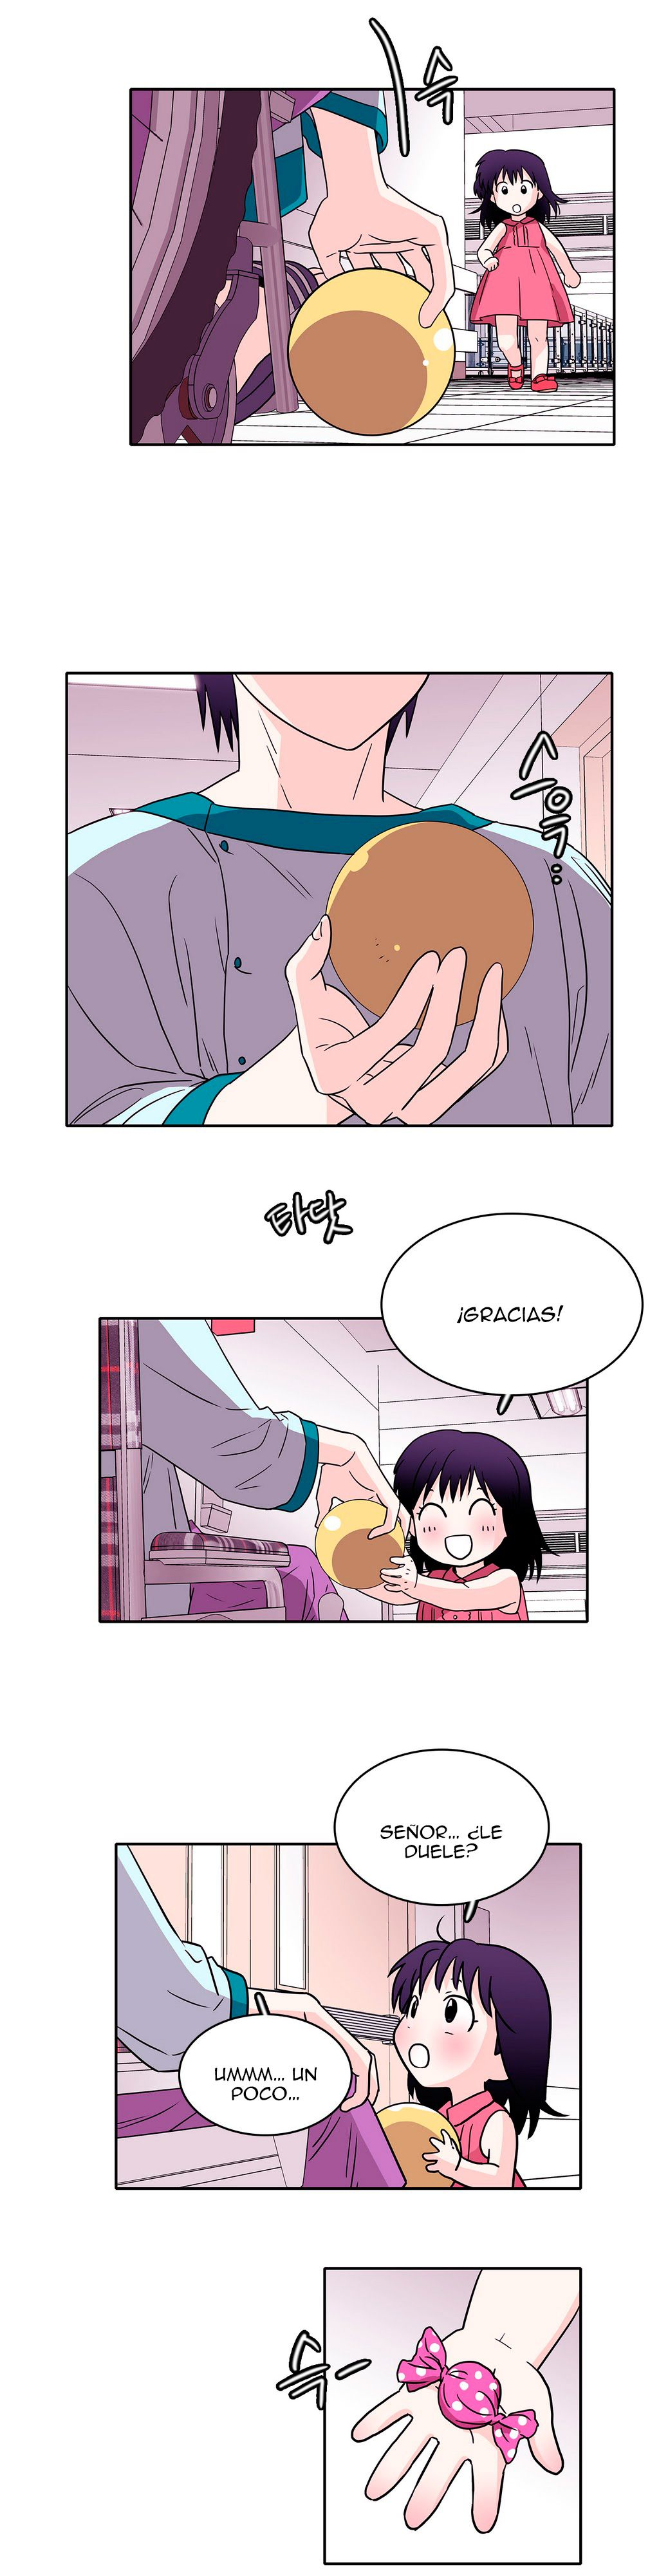 http://c5.ninemanga.com/es_manga/51/19443/464651/e1f95004b4e3440796852f7ea802bbd5.jpg Page 4